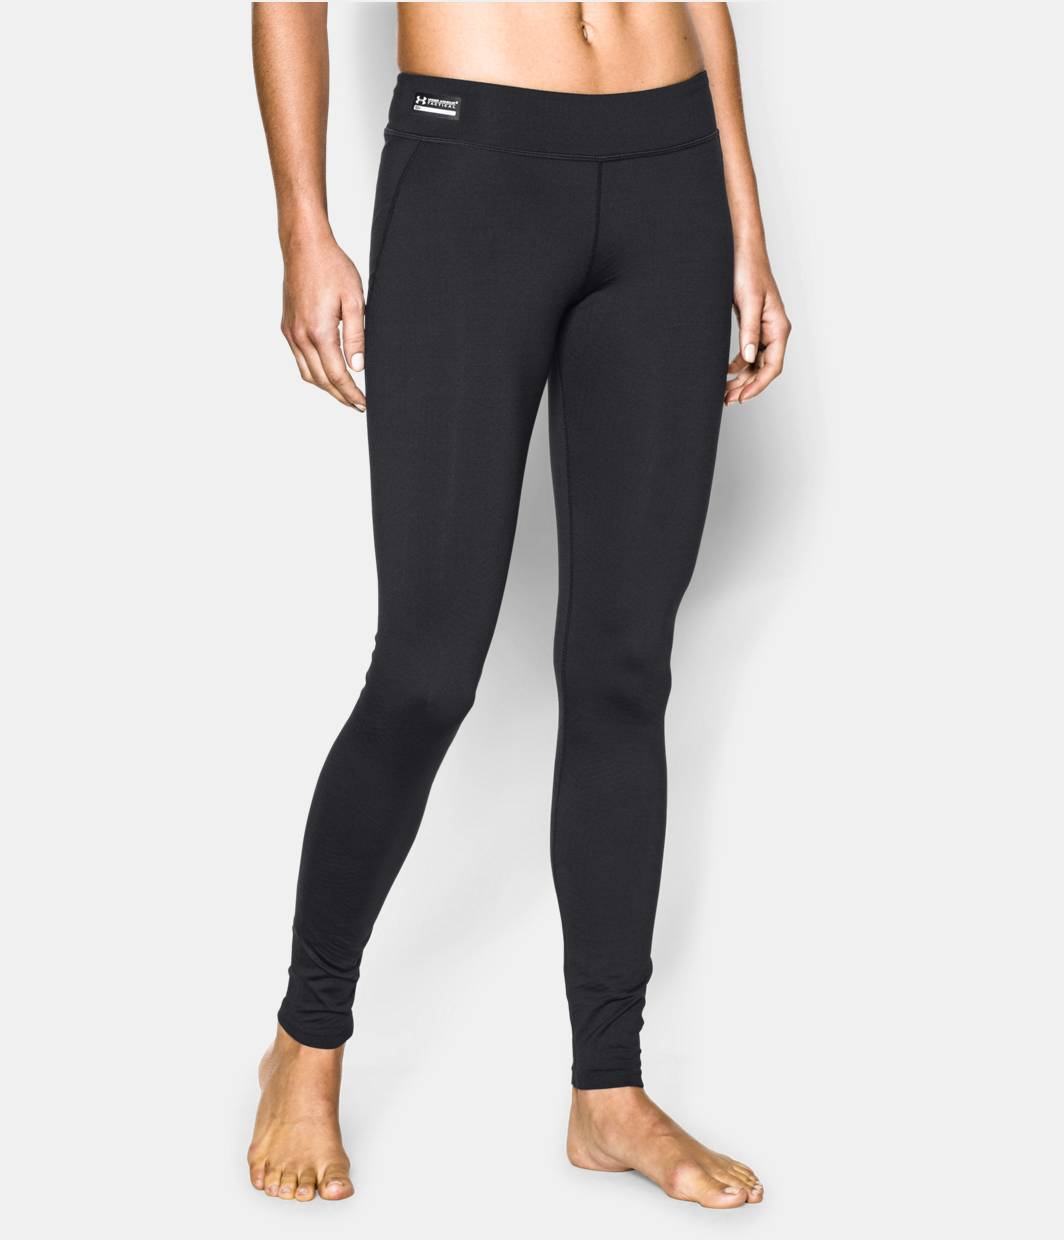 From women's compression leggings to high-waisted leggings, our women's workout bottoms are designed for maximum versatility, durability and breathability. Help kick your workout up to a new level with our Lux line of women's leggings, featuring sweat-wicking technology and an .